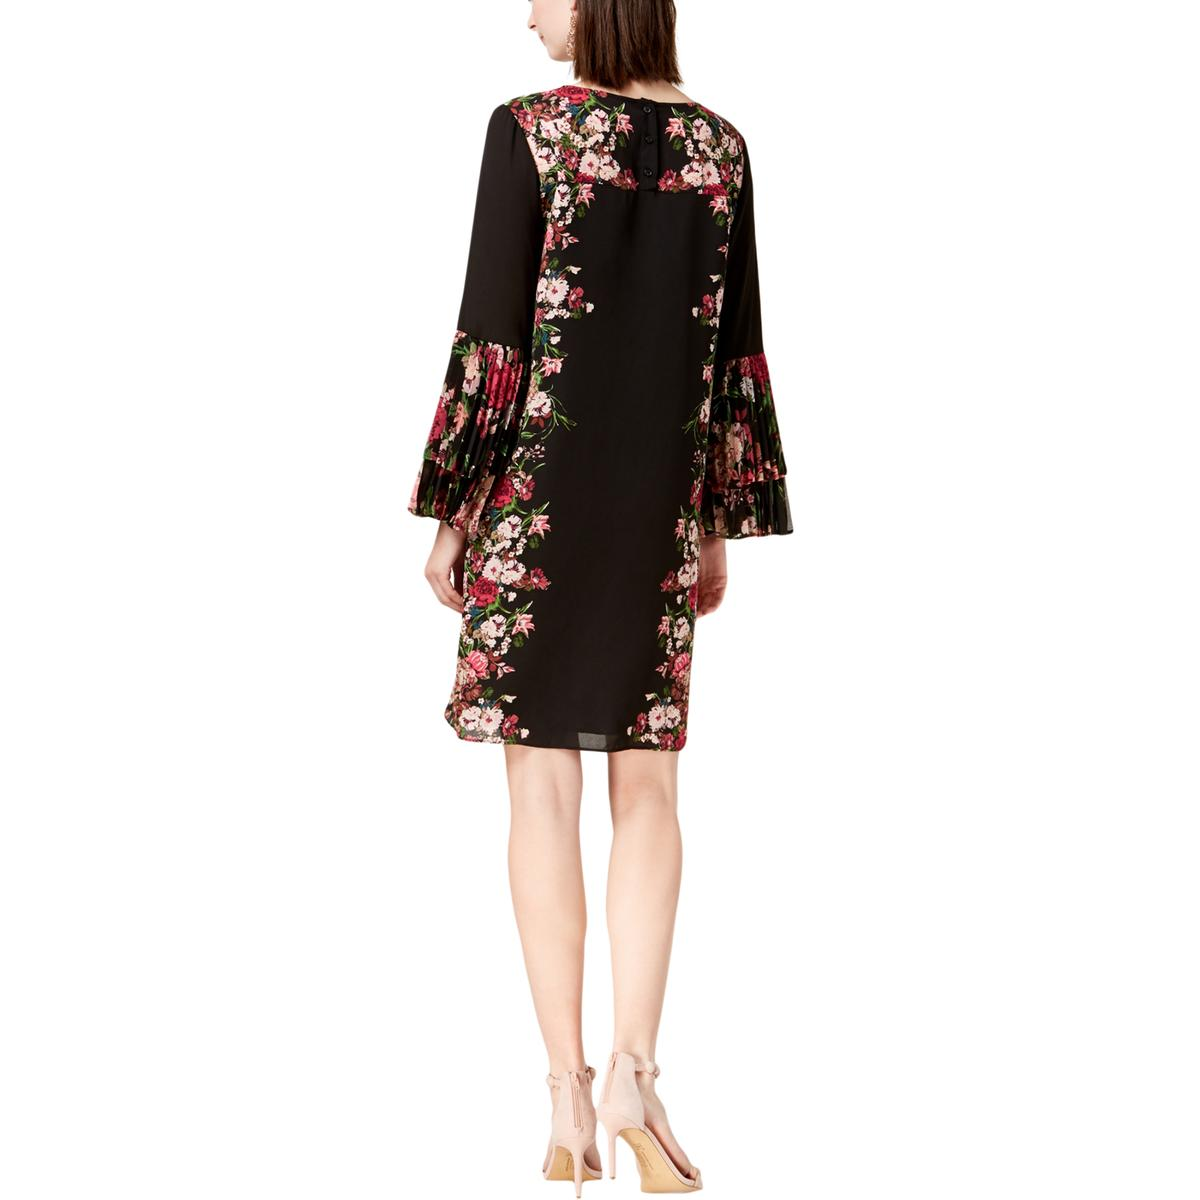 e6d768a25aa2 Details about INC Womens Black Floral Print Pleated Bell Sleeve Shirtdress  4 BHFO 3329